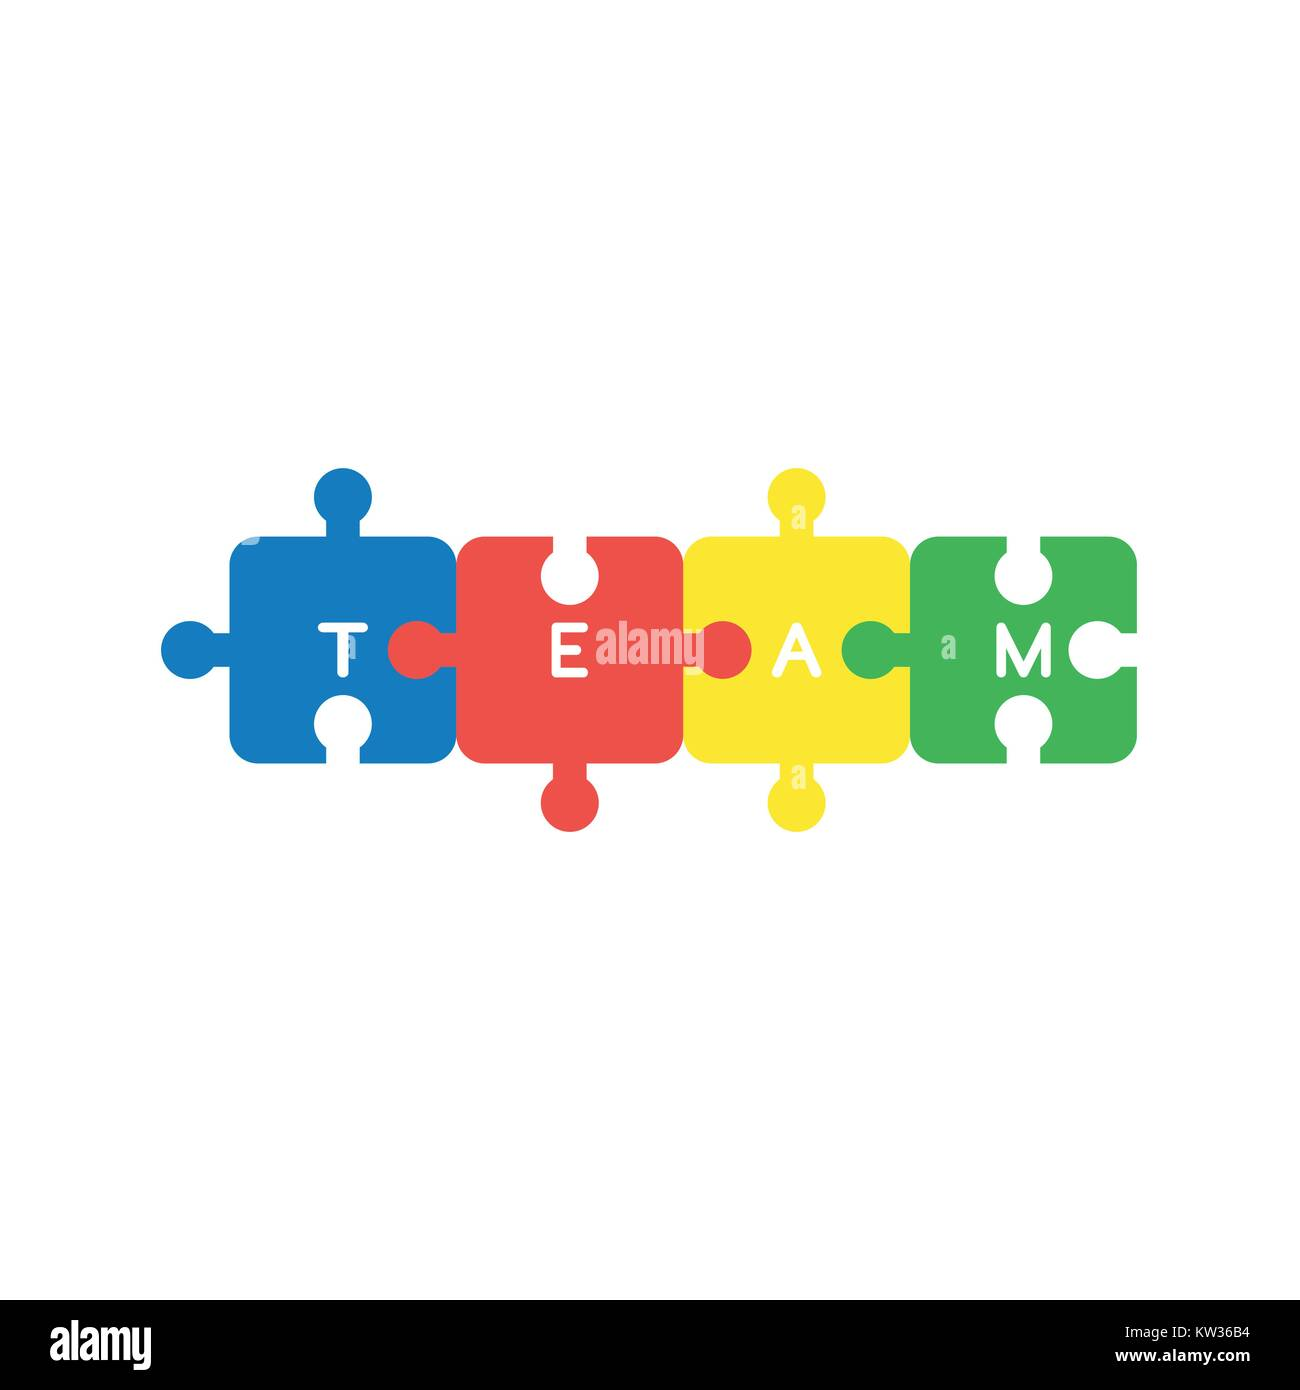 Flat Design Vector Illustration Concept Of Four Jigsaw Puzzle Pieces Symbol Icon Connected And Team Word Written On White Background